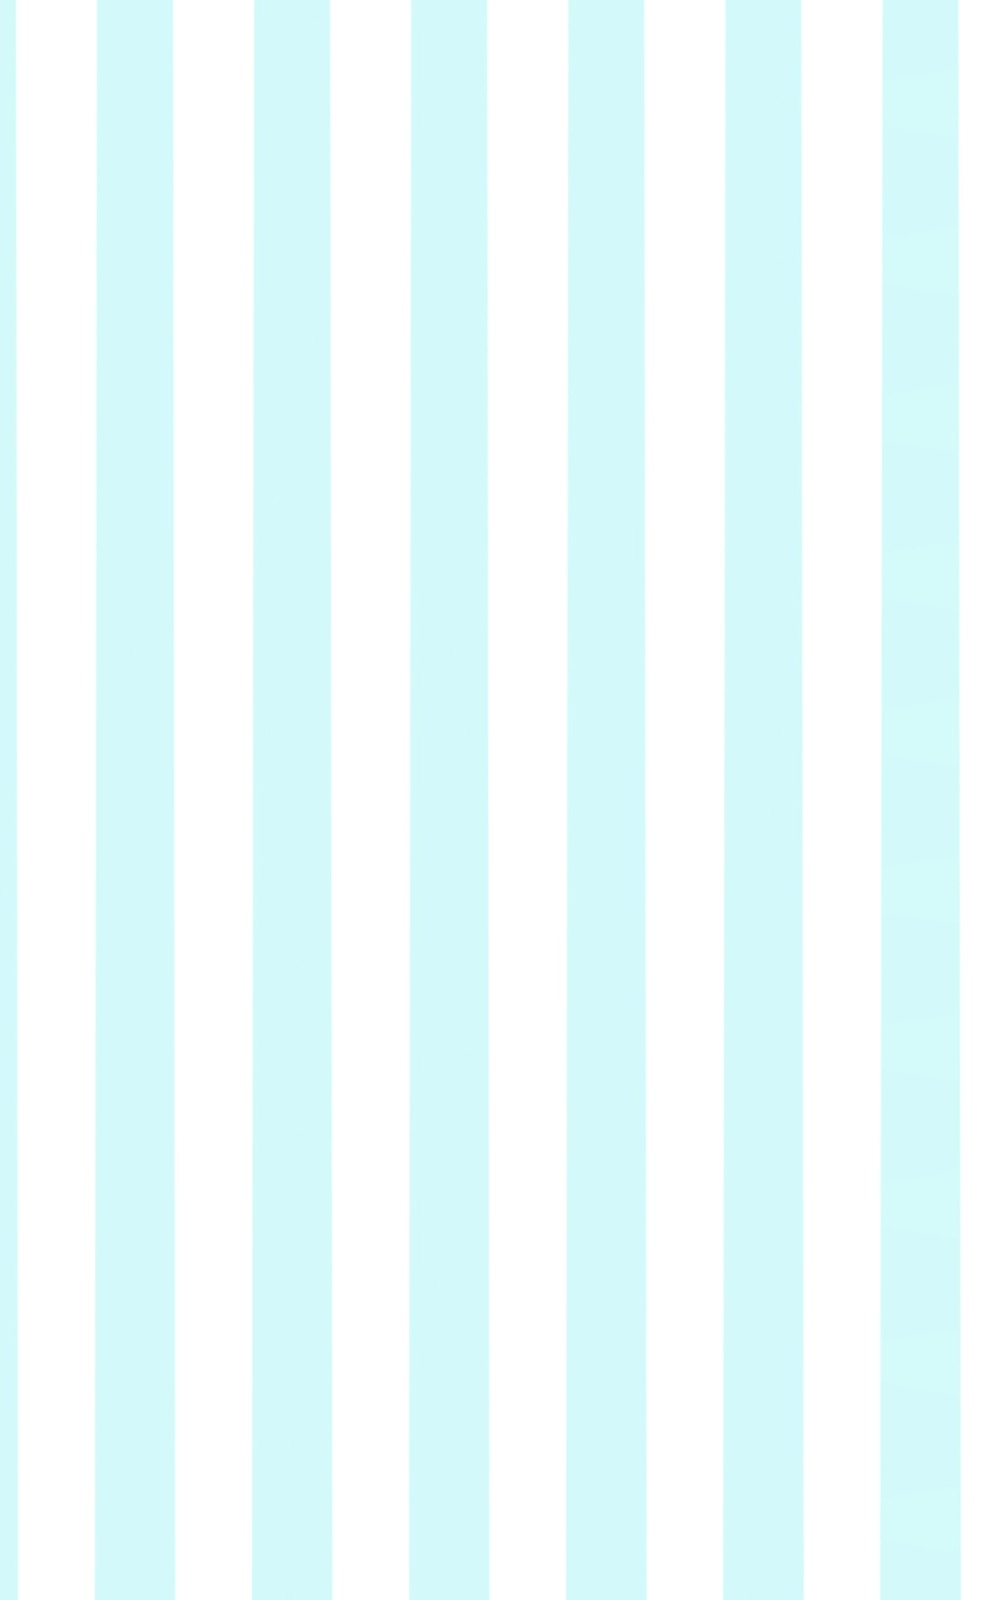 Blue and White Stripes Custom Box Background by DUSKvsDAWN on 1000x1600